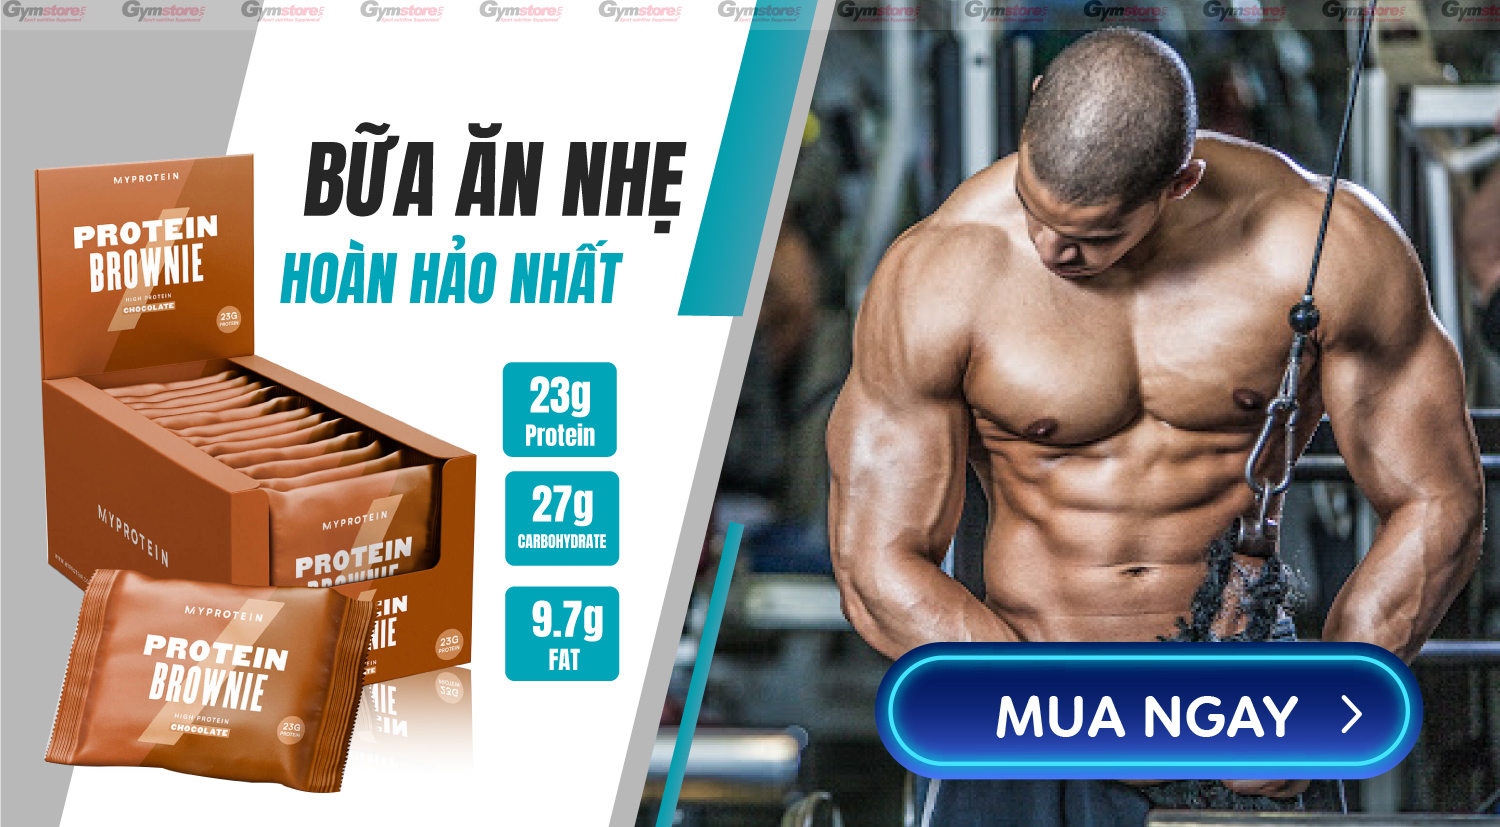 Myprotein-Brownie-Protein-Bar-phat-trien-co-bap-gymstore